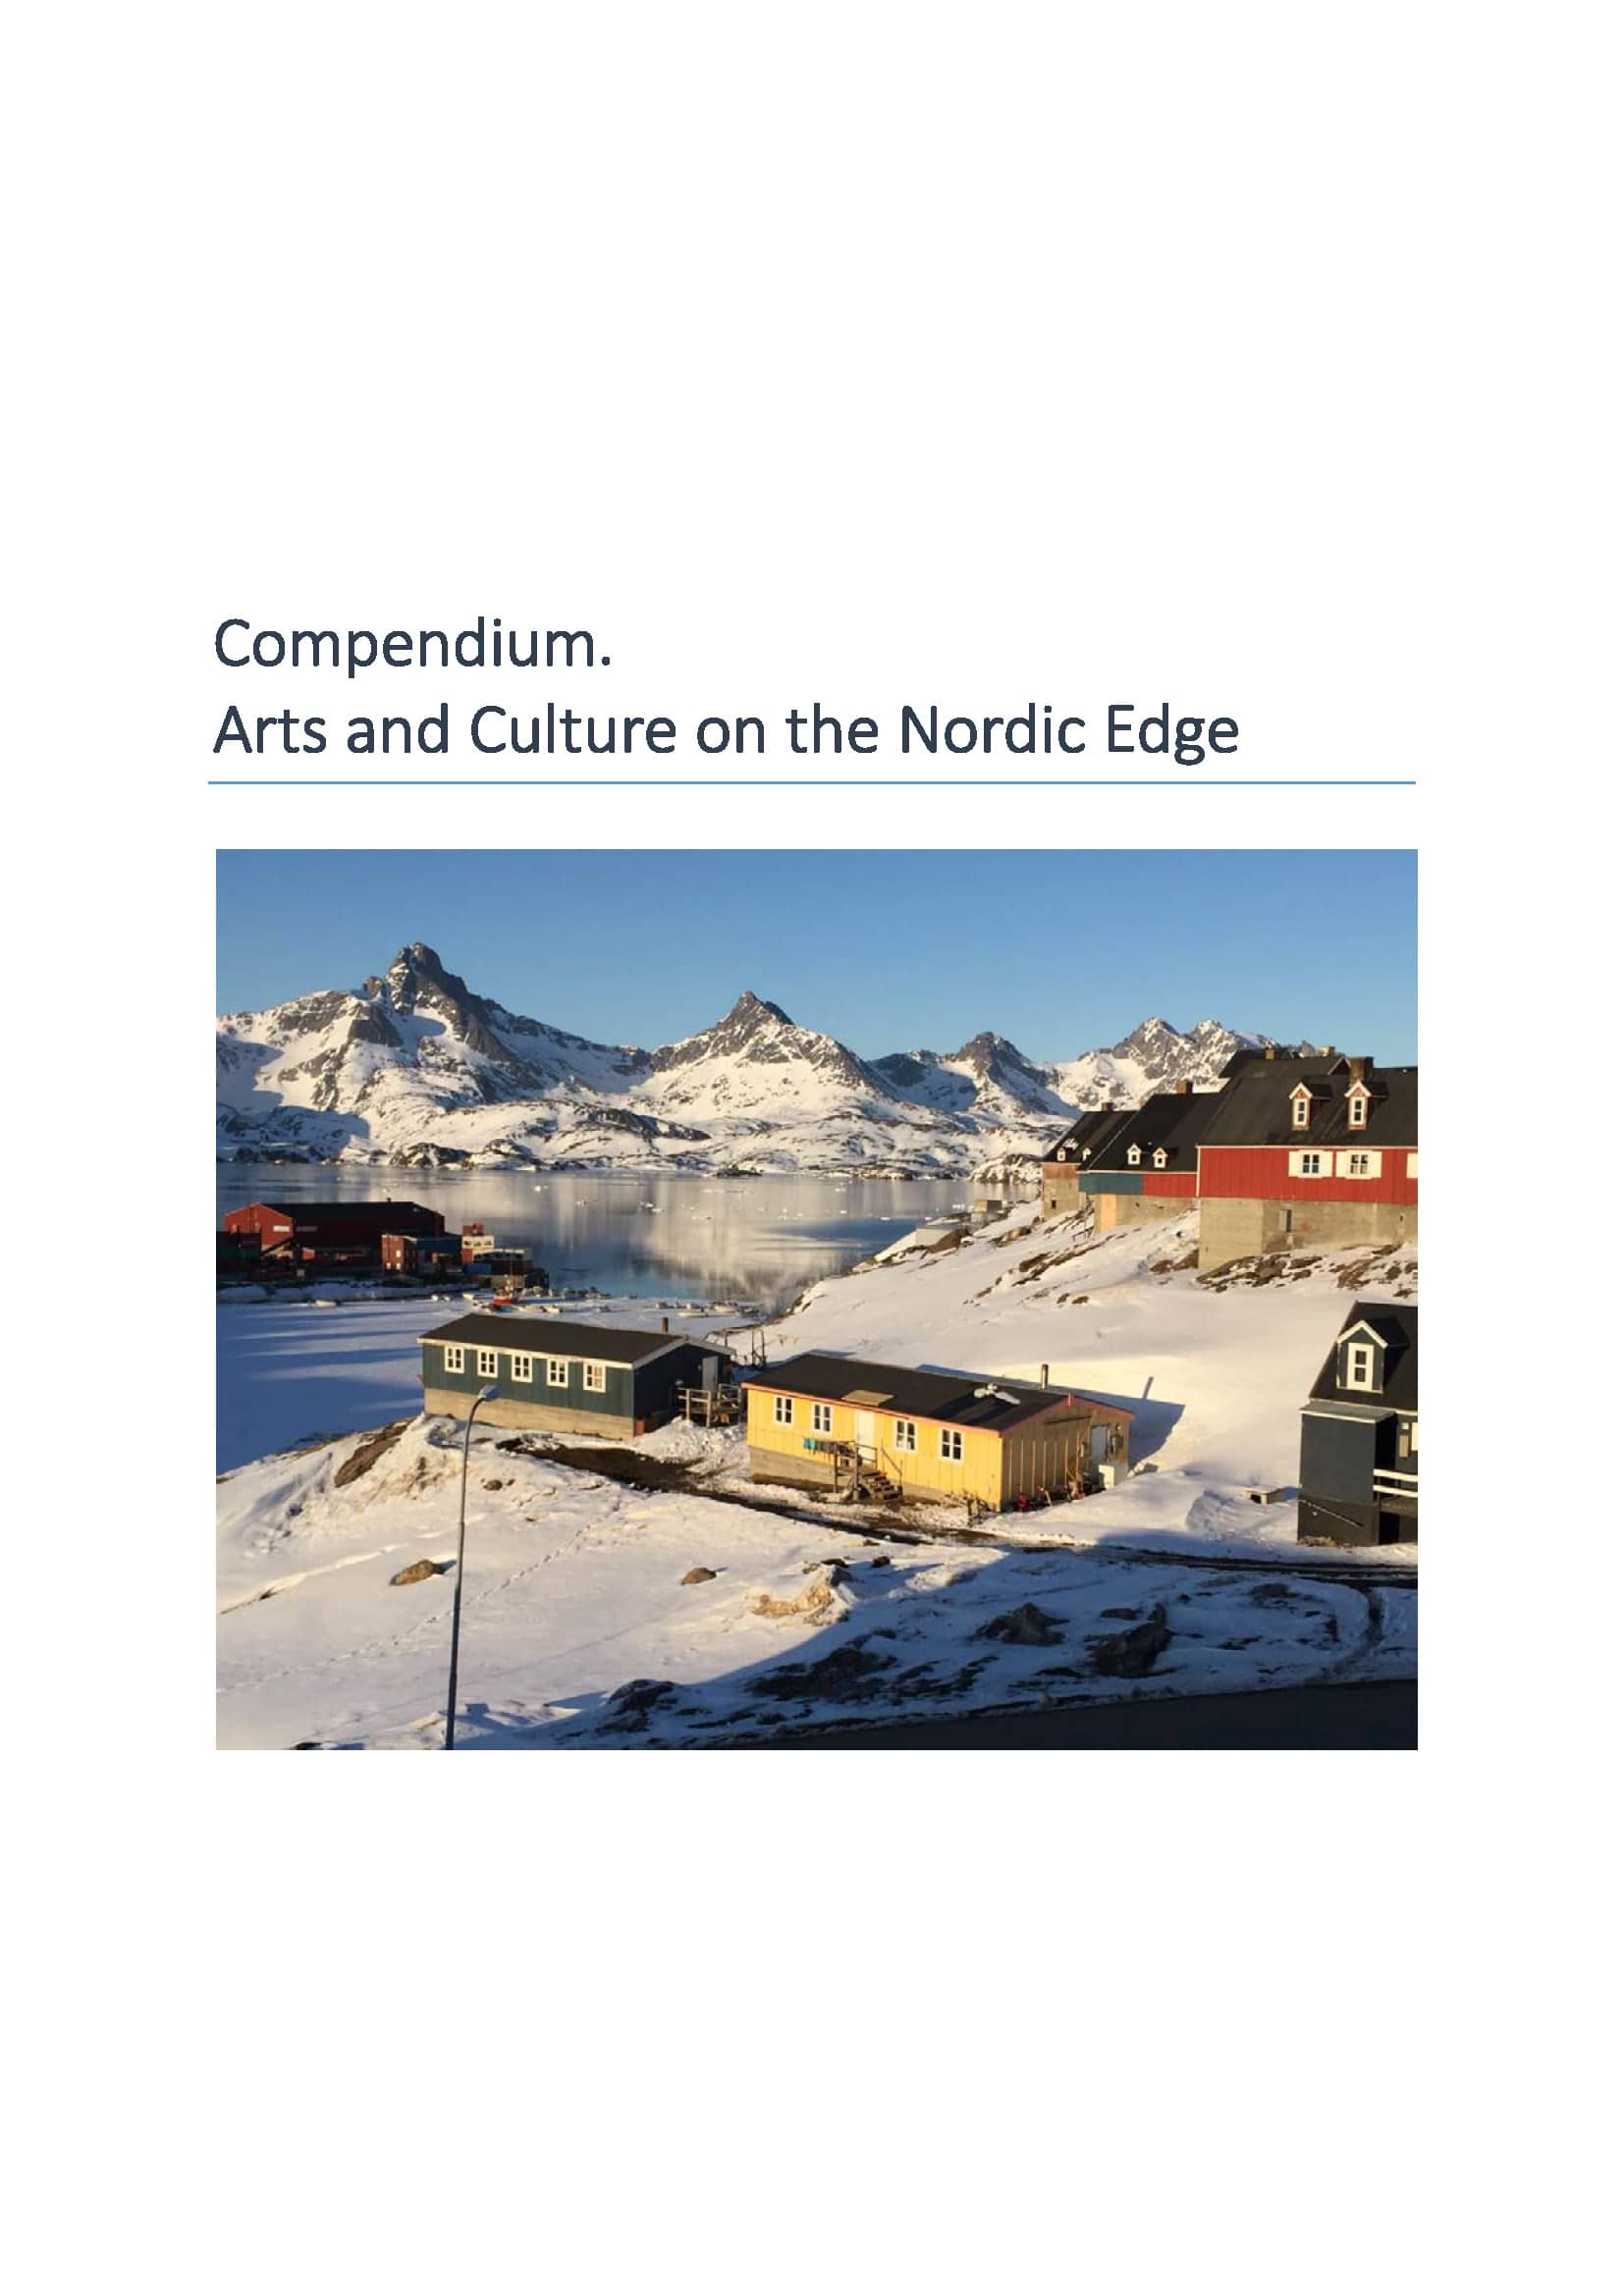 Arts and Culture on the Nordic Edge